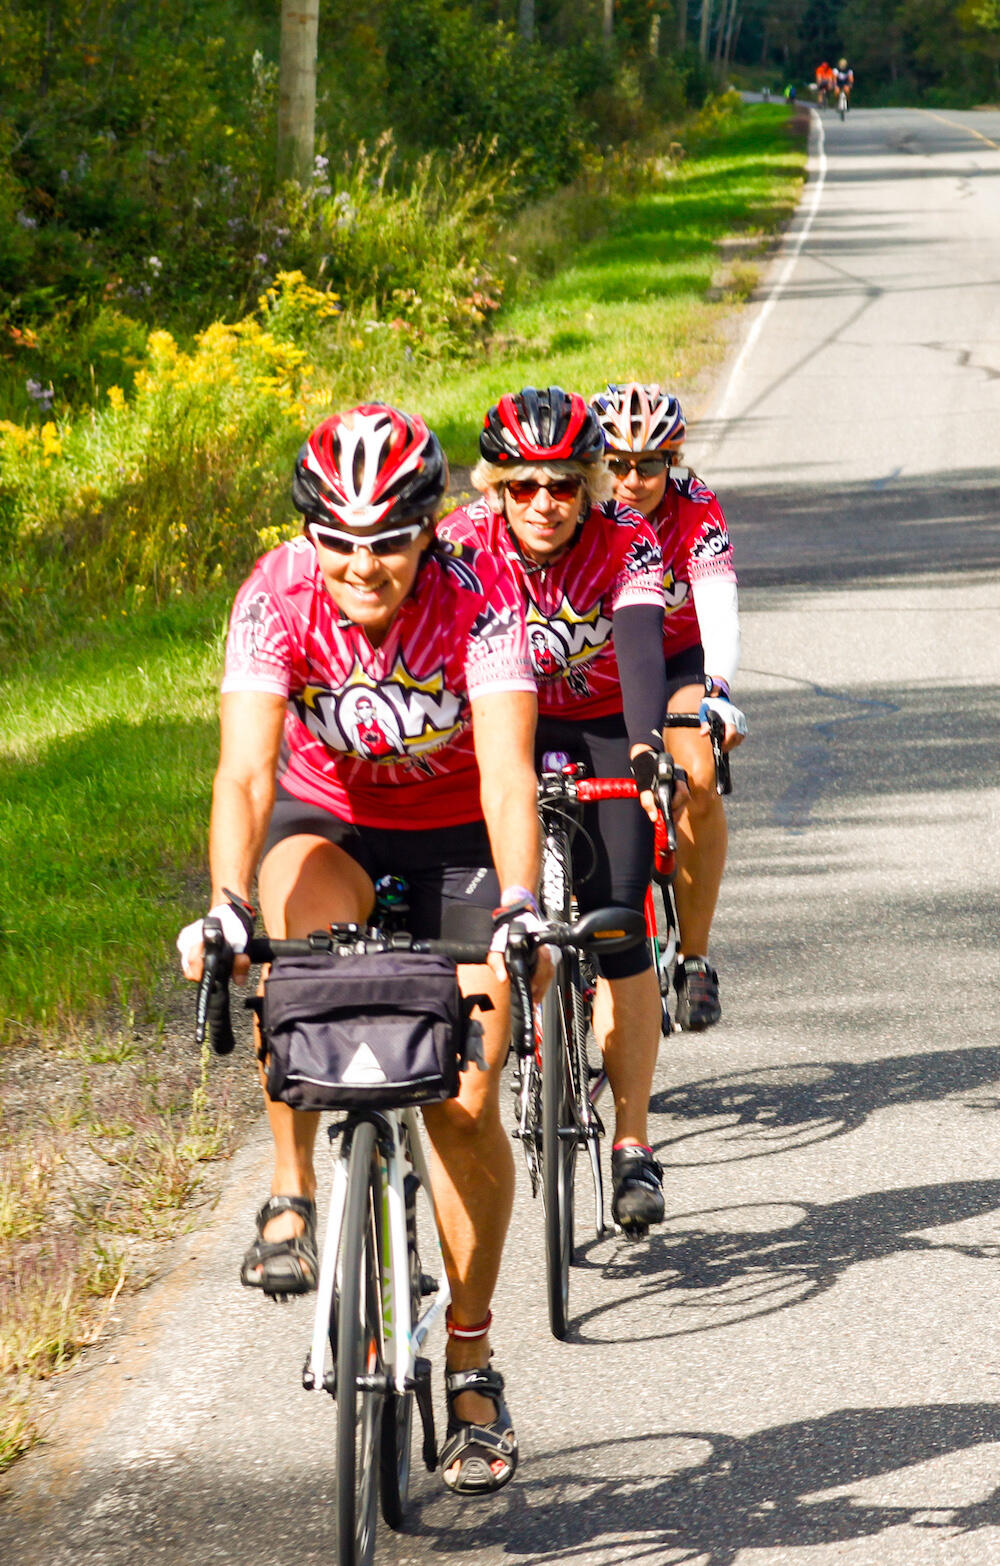 Three women cyclists dressed in colourful spandex riding in single file on road